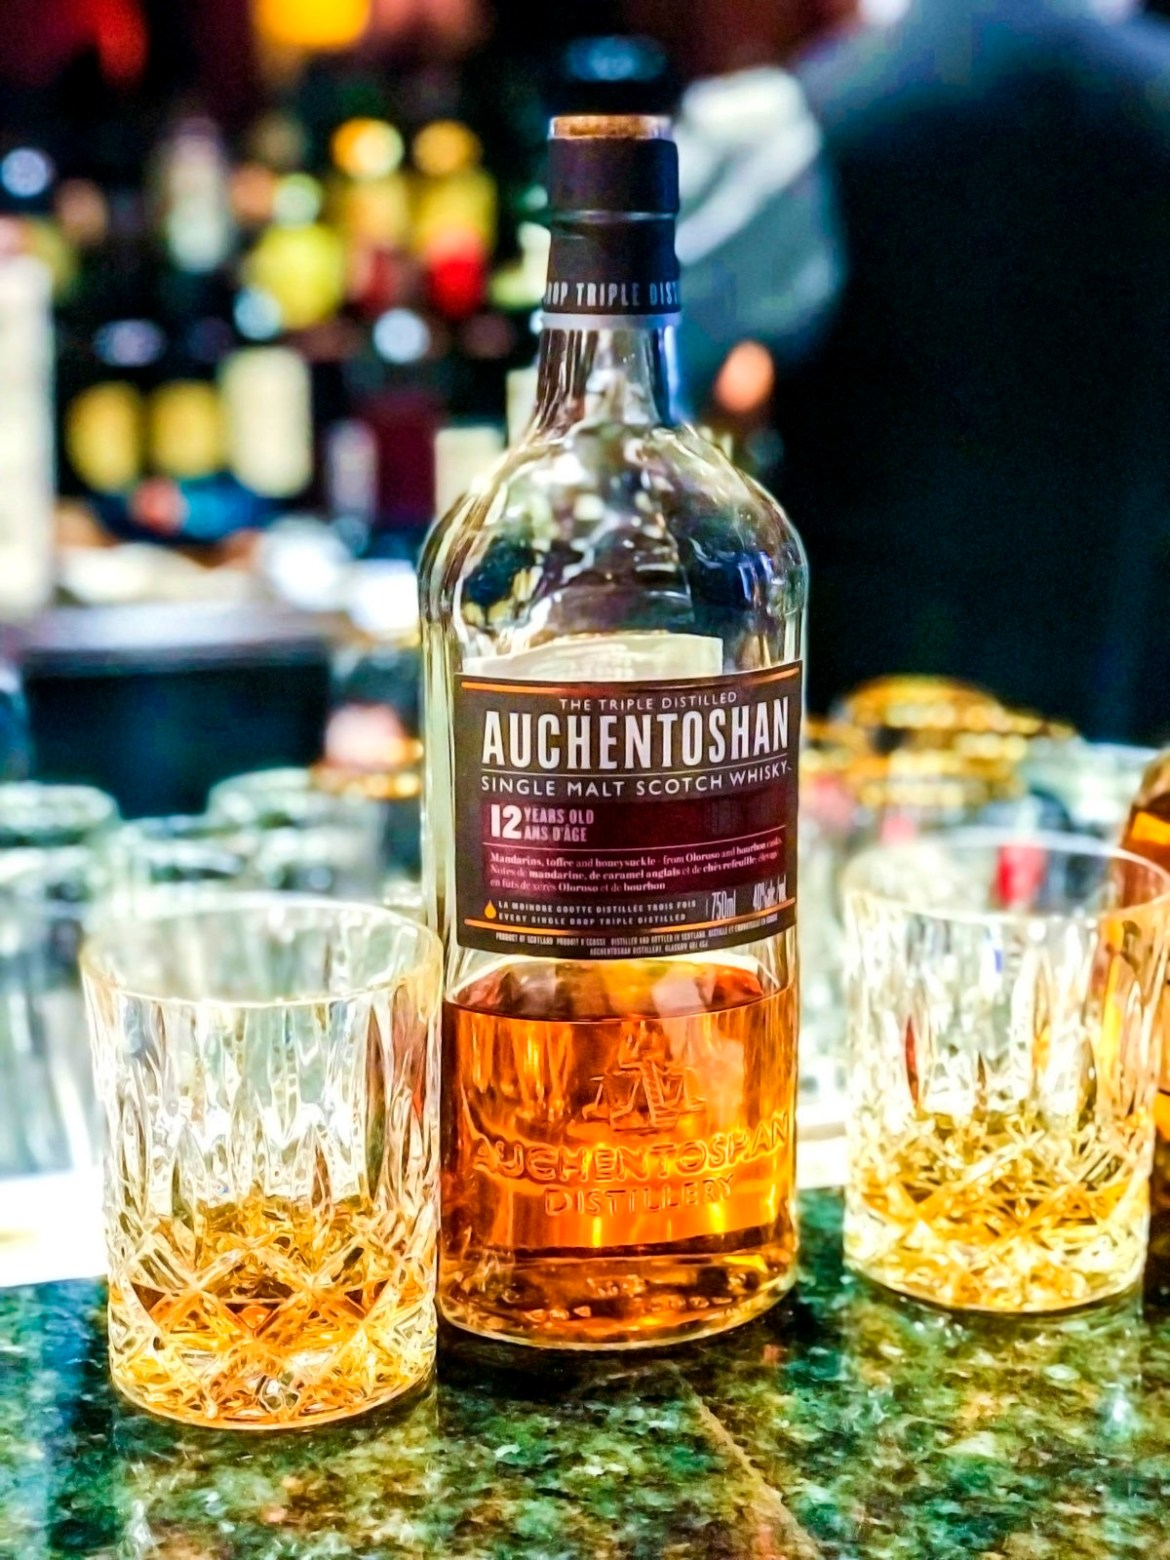 Learn About Scotch with a Guided Tasting